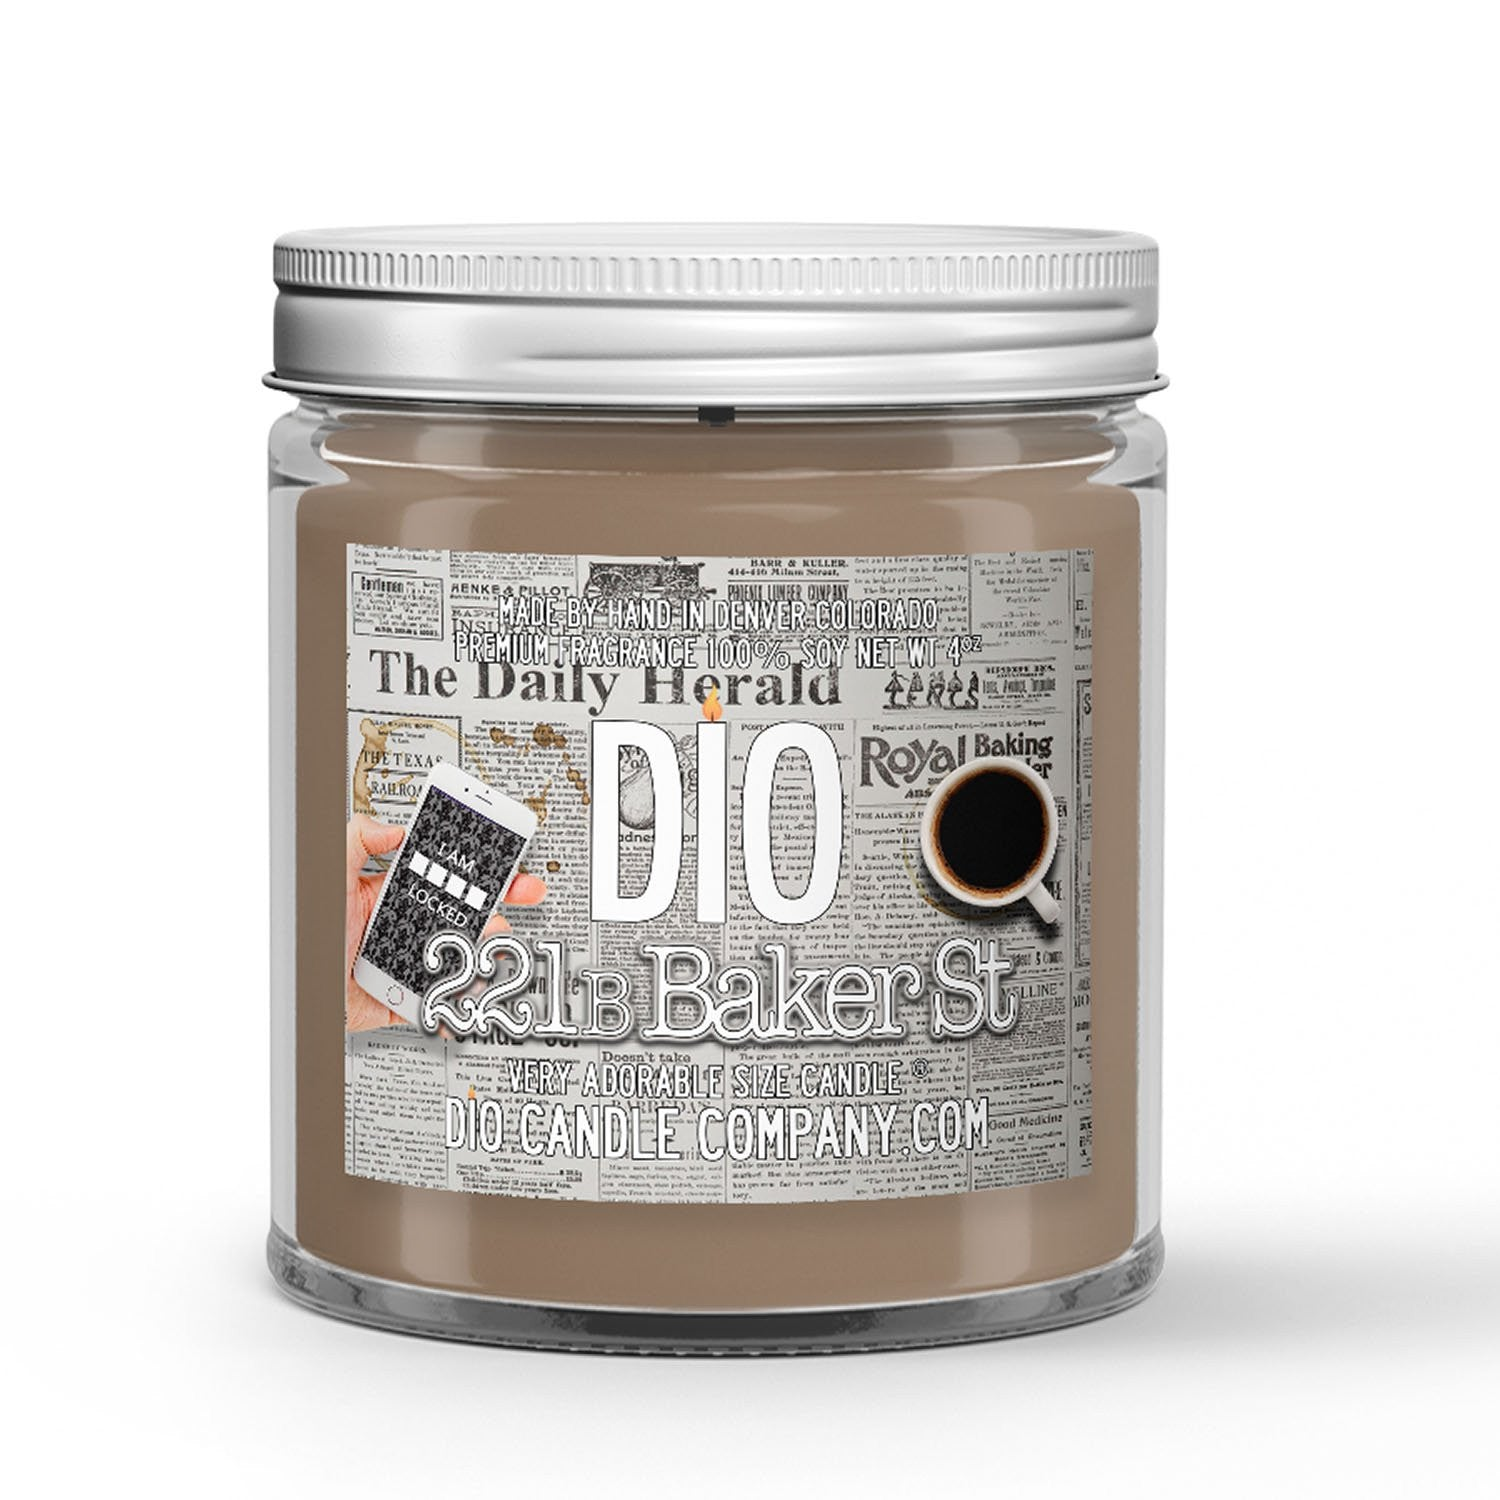 221b Baker Street Candle Newspaper - Tobacco - Espresso Scented - Dio Candle Company